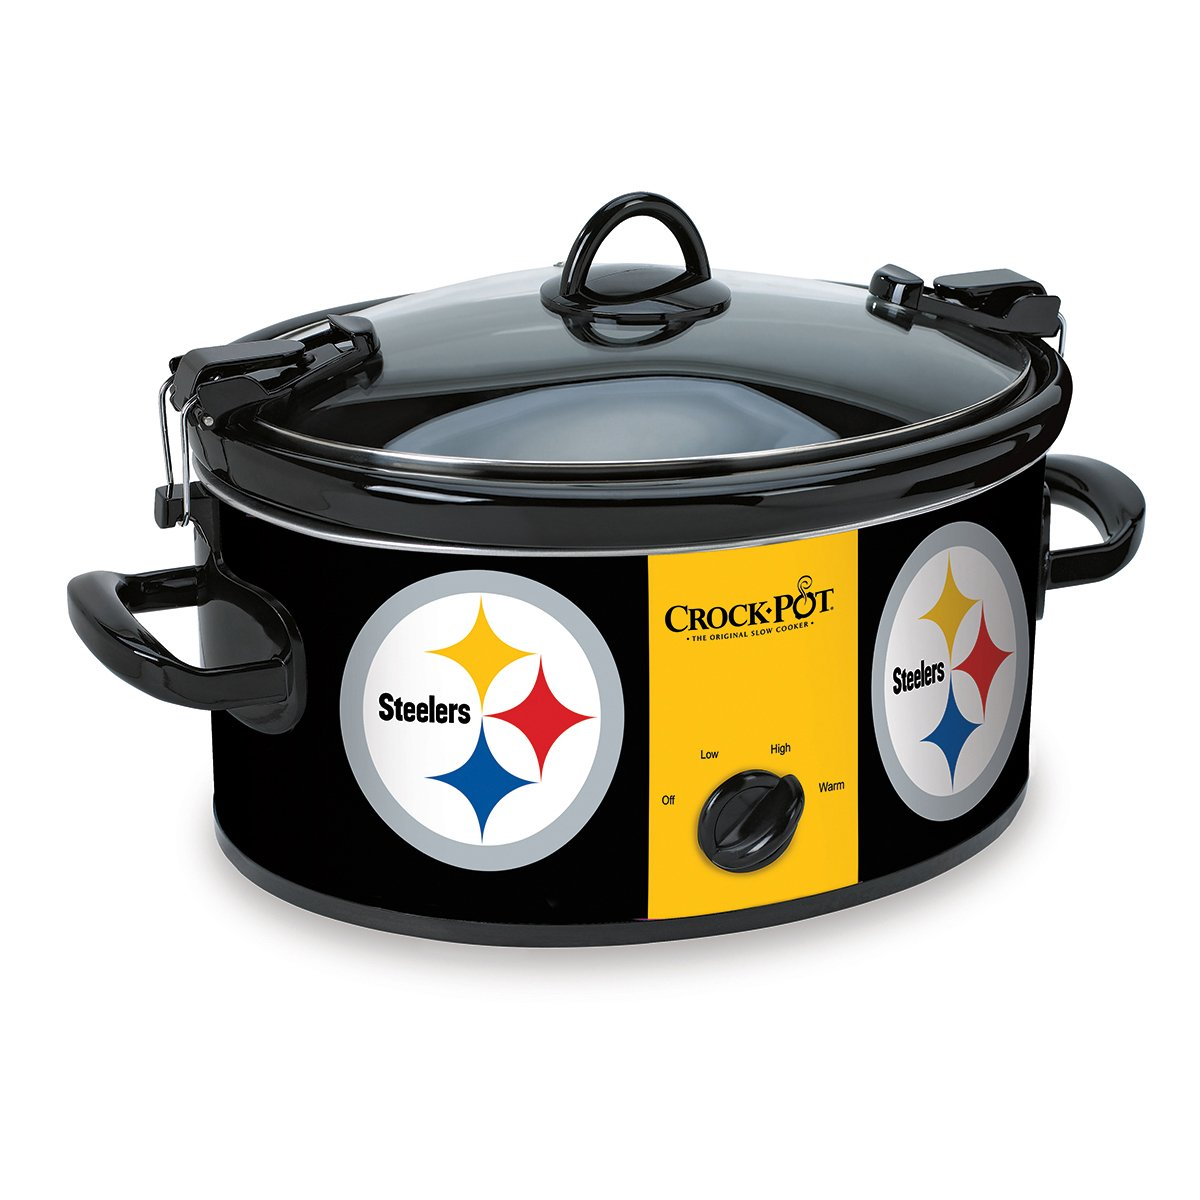 Crock-Pot Pittsburgh Steelers NFL 6-Quart Cook & Carry Slow Cooker